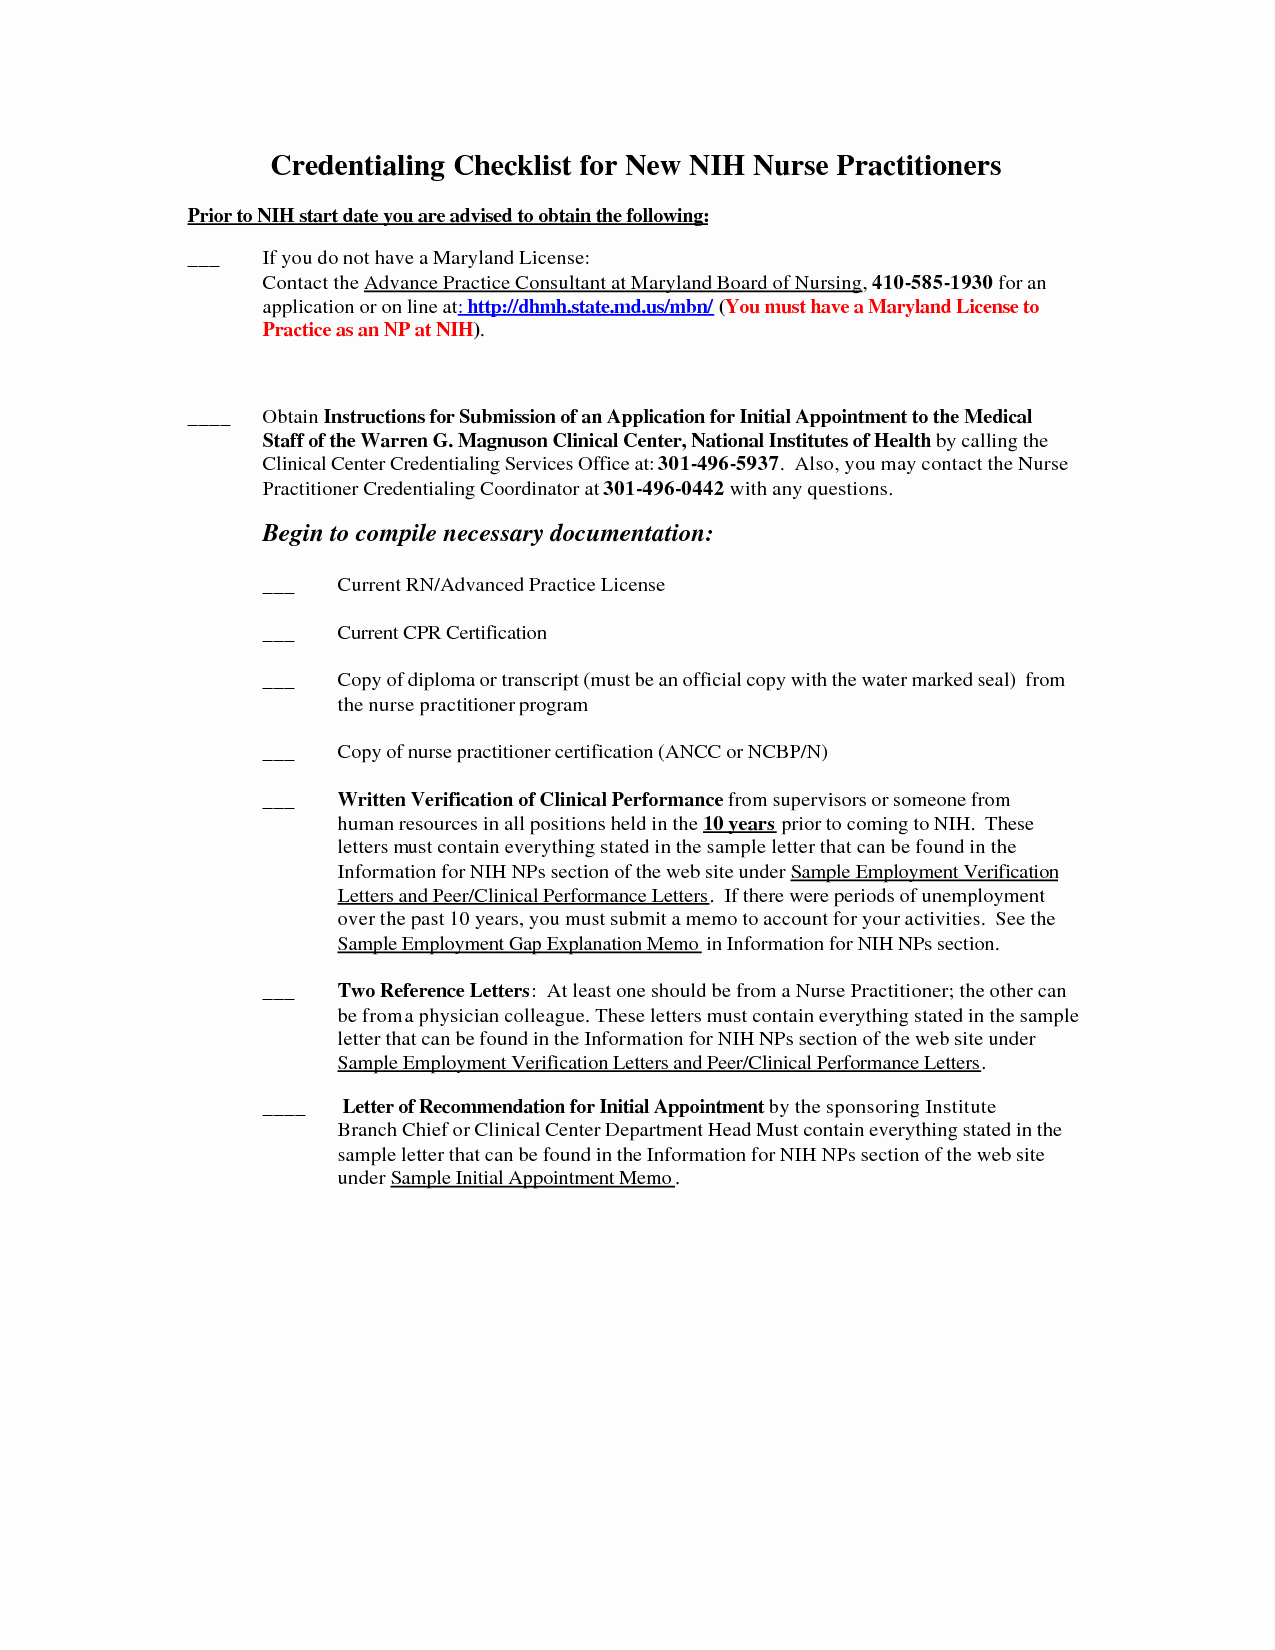 Nurse Practitioner Letter Of Recommendation Beautiful Resignation Letter Example Nurse Practitioner